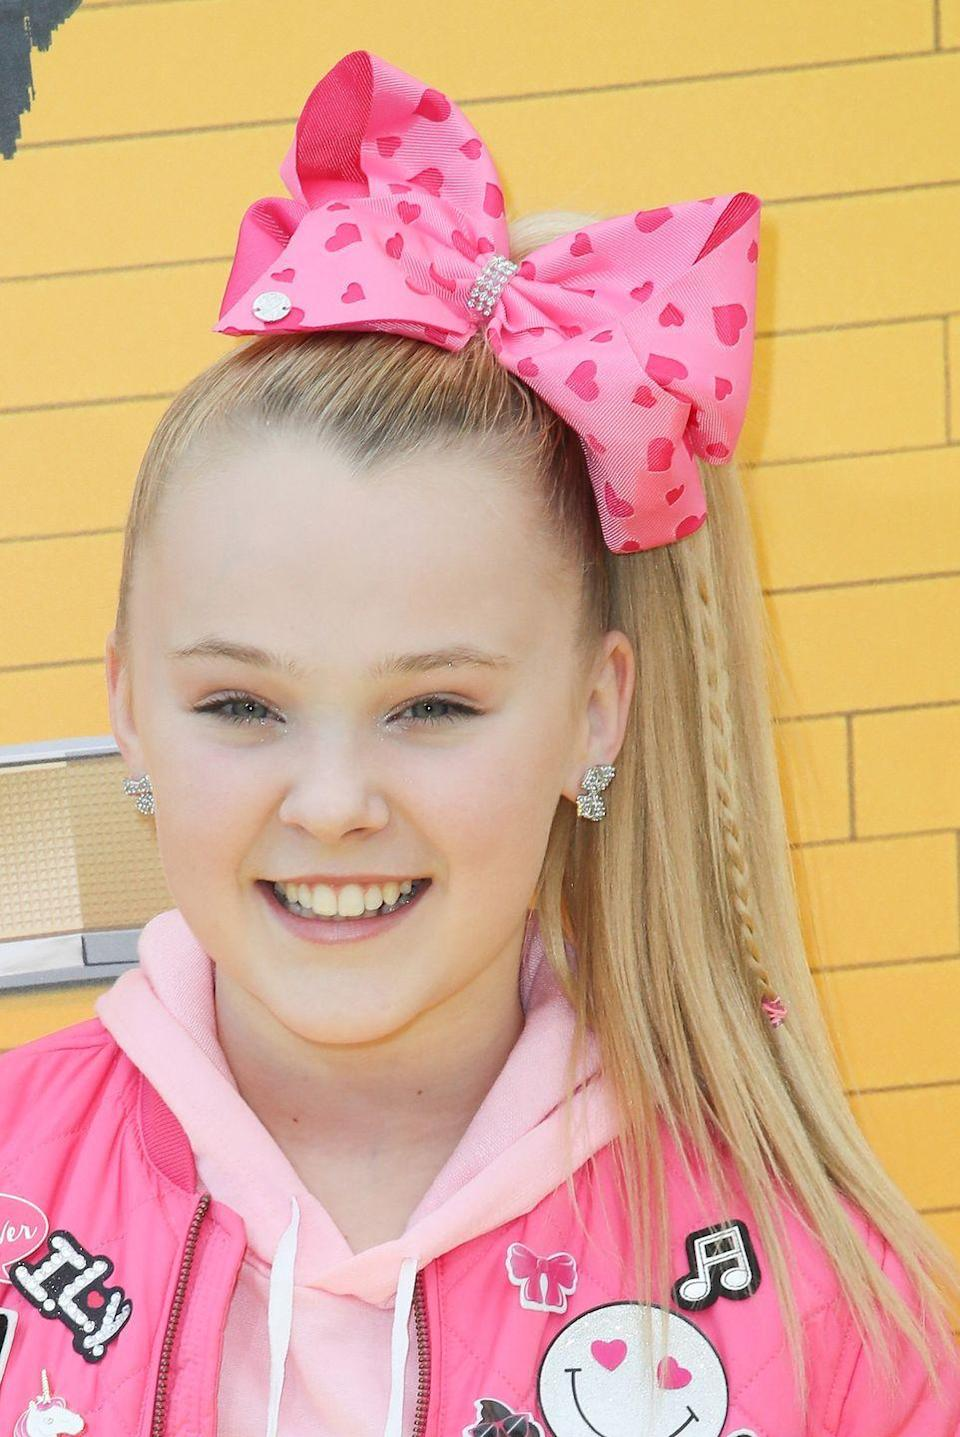 """<p>Now <em>this</em> is how you make an entrance. Copy <strong>JoJo Siwa'</strong>s trademark style by finishing off her ponytail with a massive — key word: massive — bow. </p><p><a class=""""link rapid-noclick-resp"""" href=""""https://www.amazon.com/Alligator-Unicorn-Grosgrain-Barrettes-Accessories%EF%BC%882/dp/B08VRTC5RV/?tag=syn-yahoo-20&ascsubtag=%5Bartid%7C10055.g.3821%5Bsrc%7Cyahoo-us"""" rel=""""nofollow noopener"""" target=""""_blank"""" data-ylk=""""slk:SHOP STATEMENT BOWS"""">SHOP STATEMENT BOWS</a> </p>"""